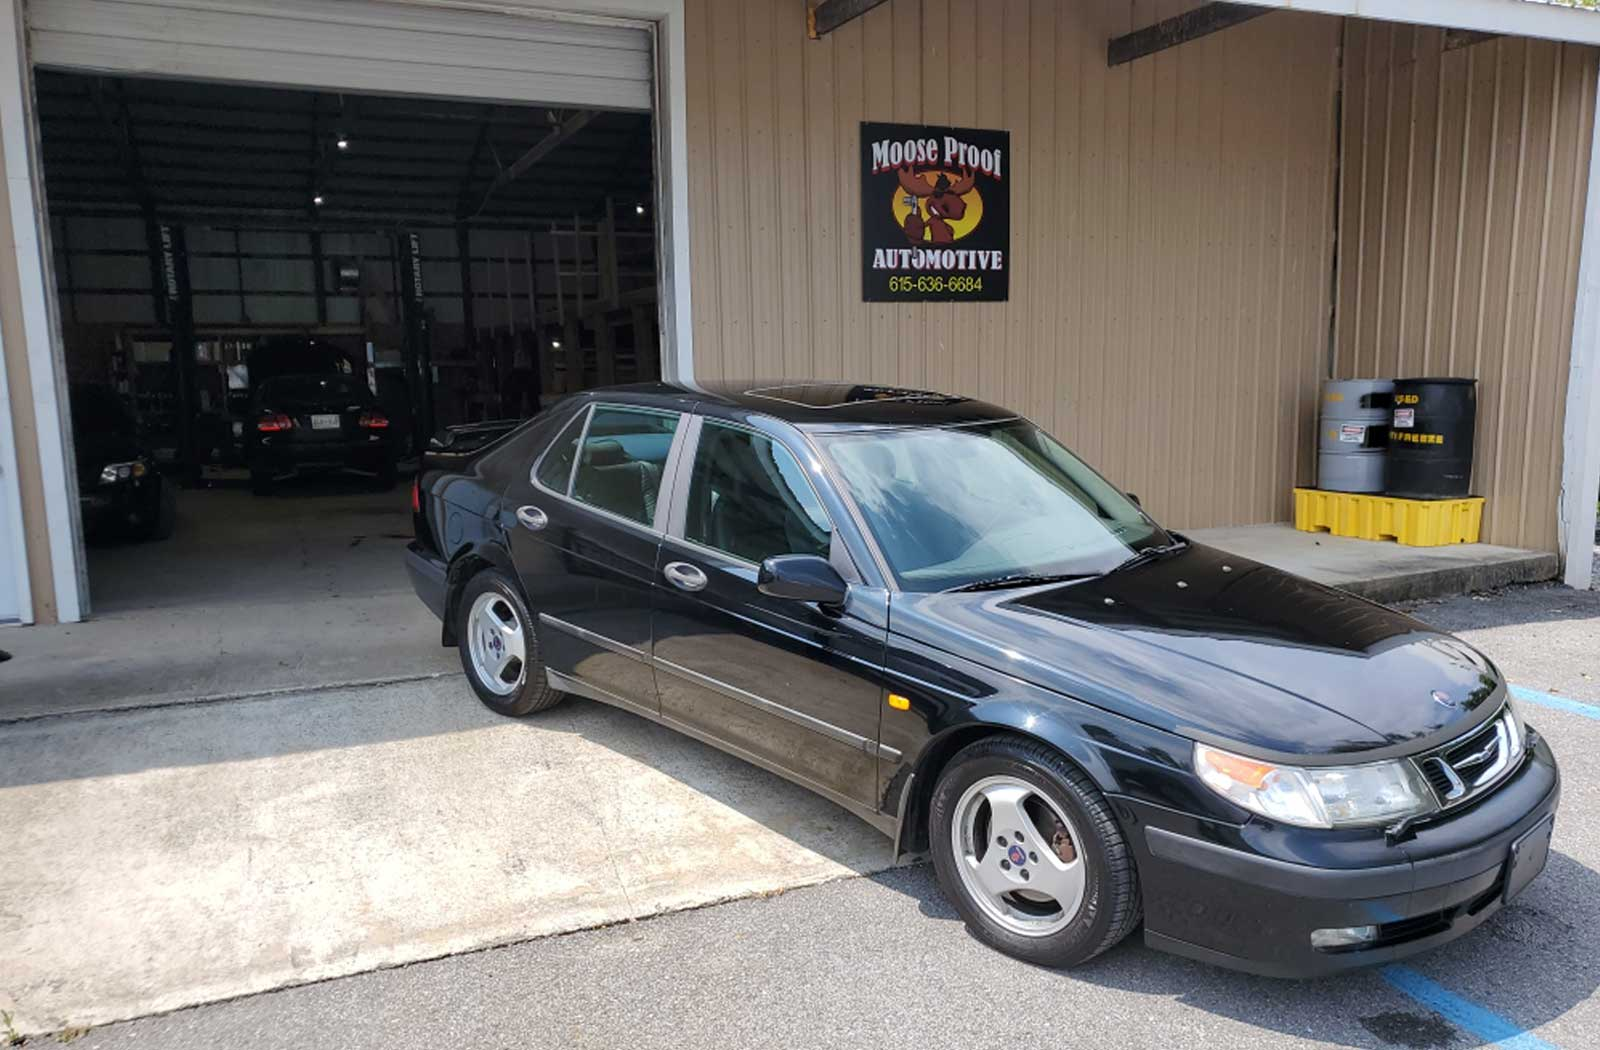 Saab repair at Moose Proof Automotive